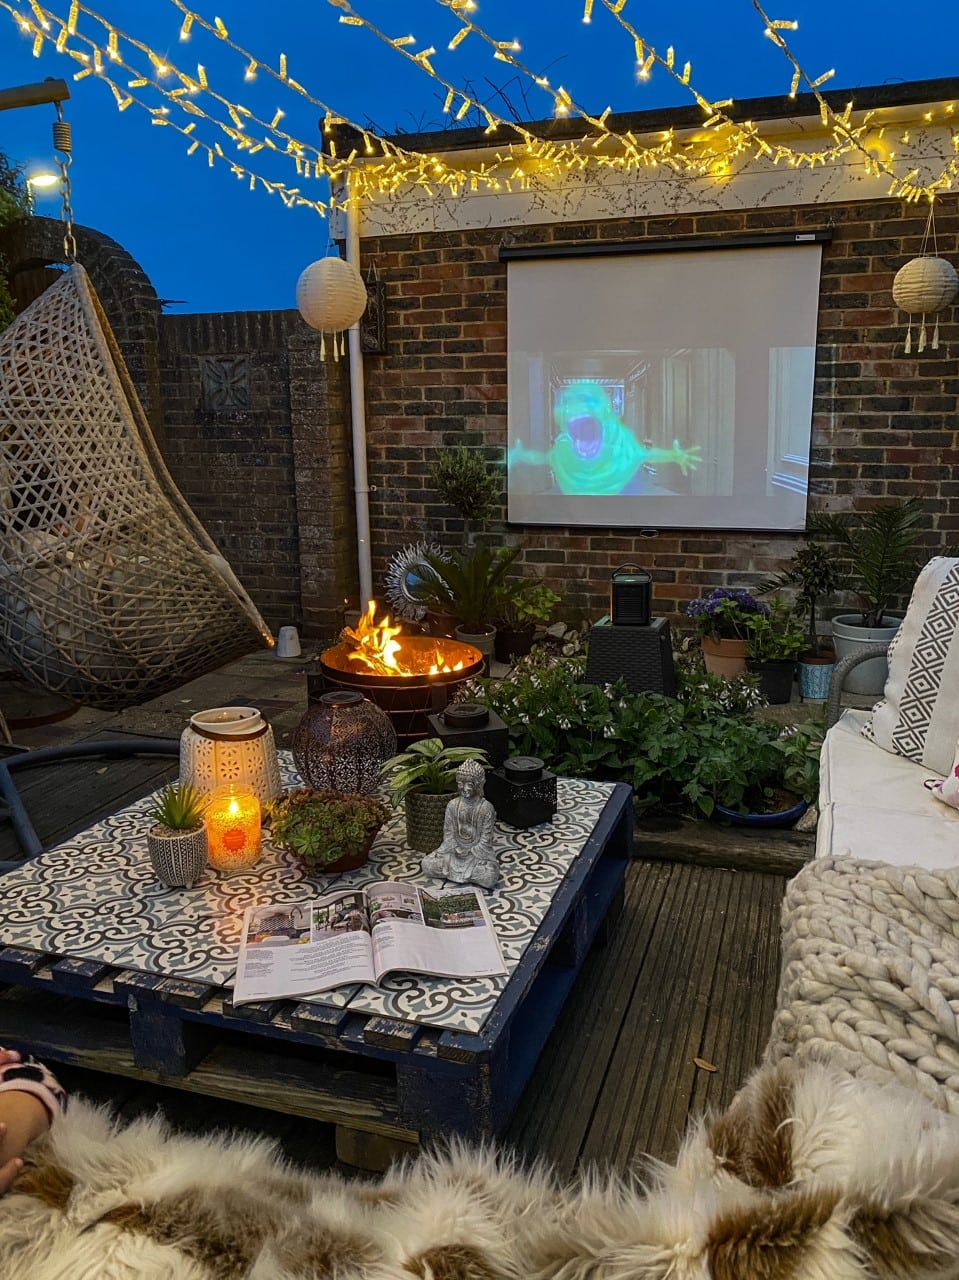 How to Set Up an Outdoor Cinema